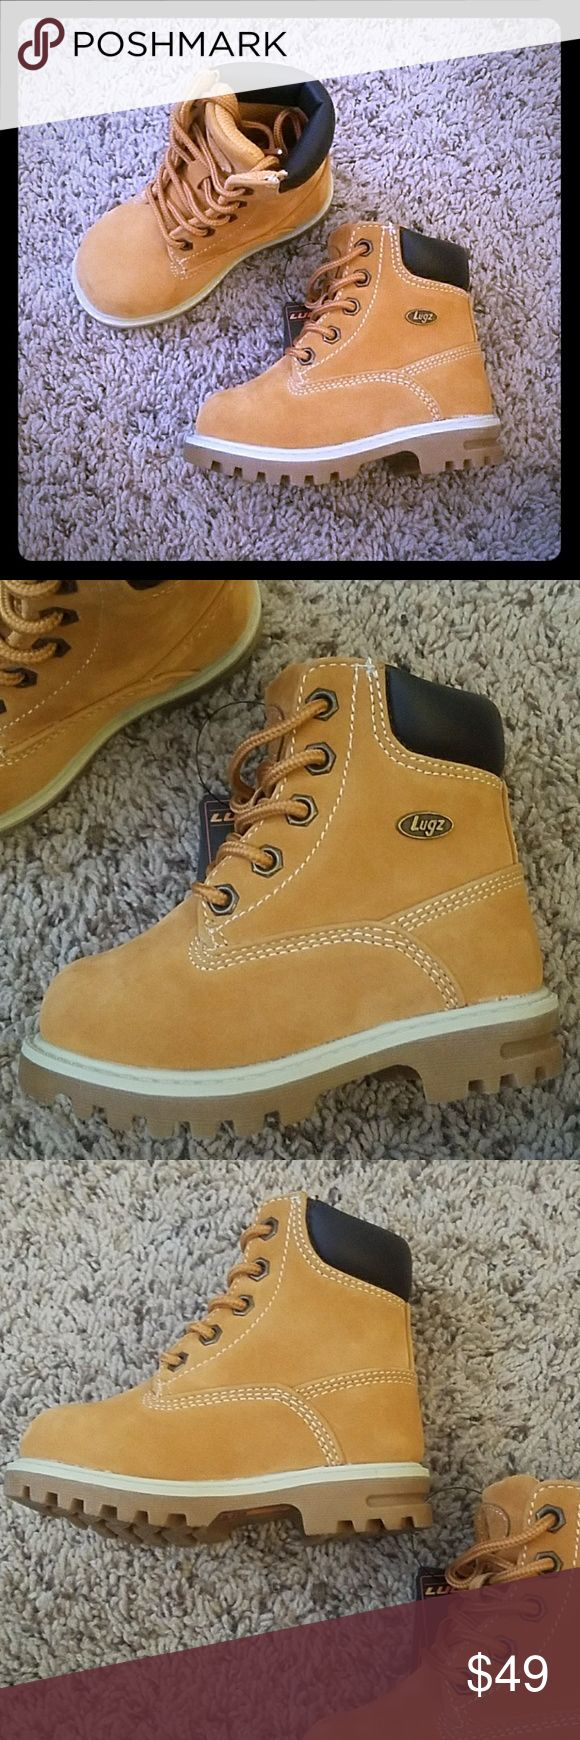 NEW • Lugz Boots • Kids Brand new.  No rips, stains, or tears.  Smoke free home.  Boys / Toddler Lugz Boots.  Golden wheat  / bark / cream color. Man made materials. Water resistant. Slip resistant. Similar to timberland style boots. Toddler size 6. Unisex for boys or girls. Lugz Shoes Boots